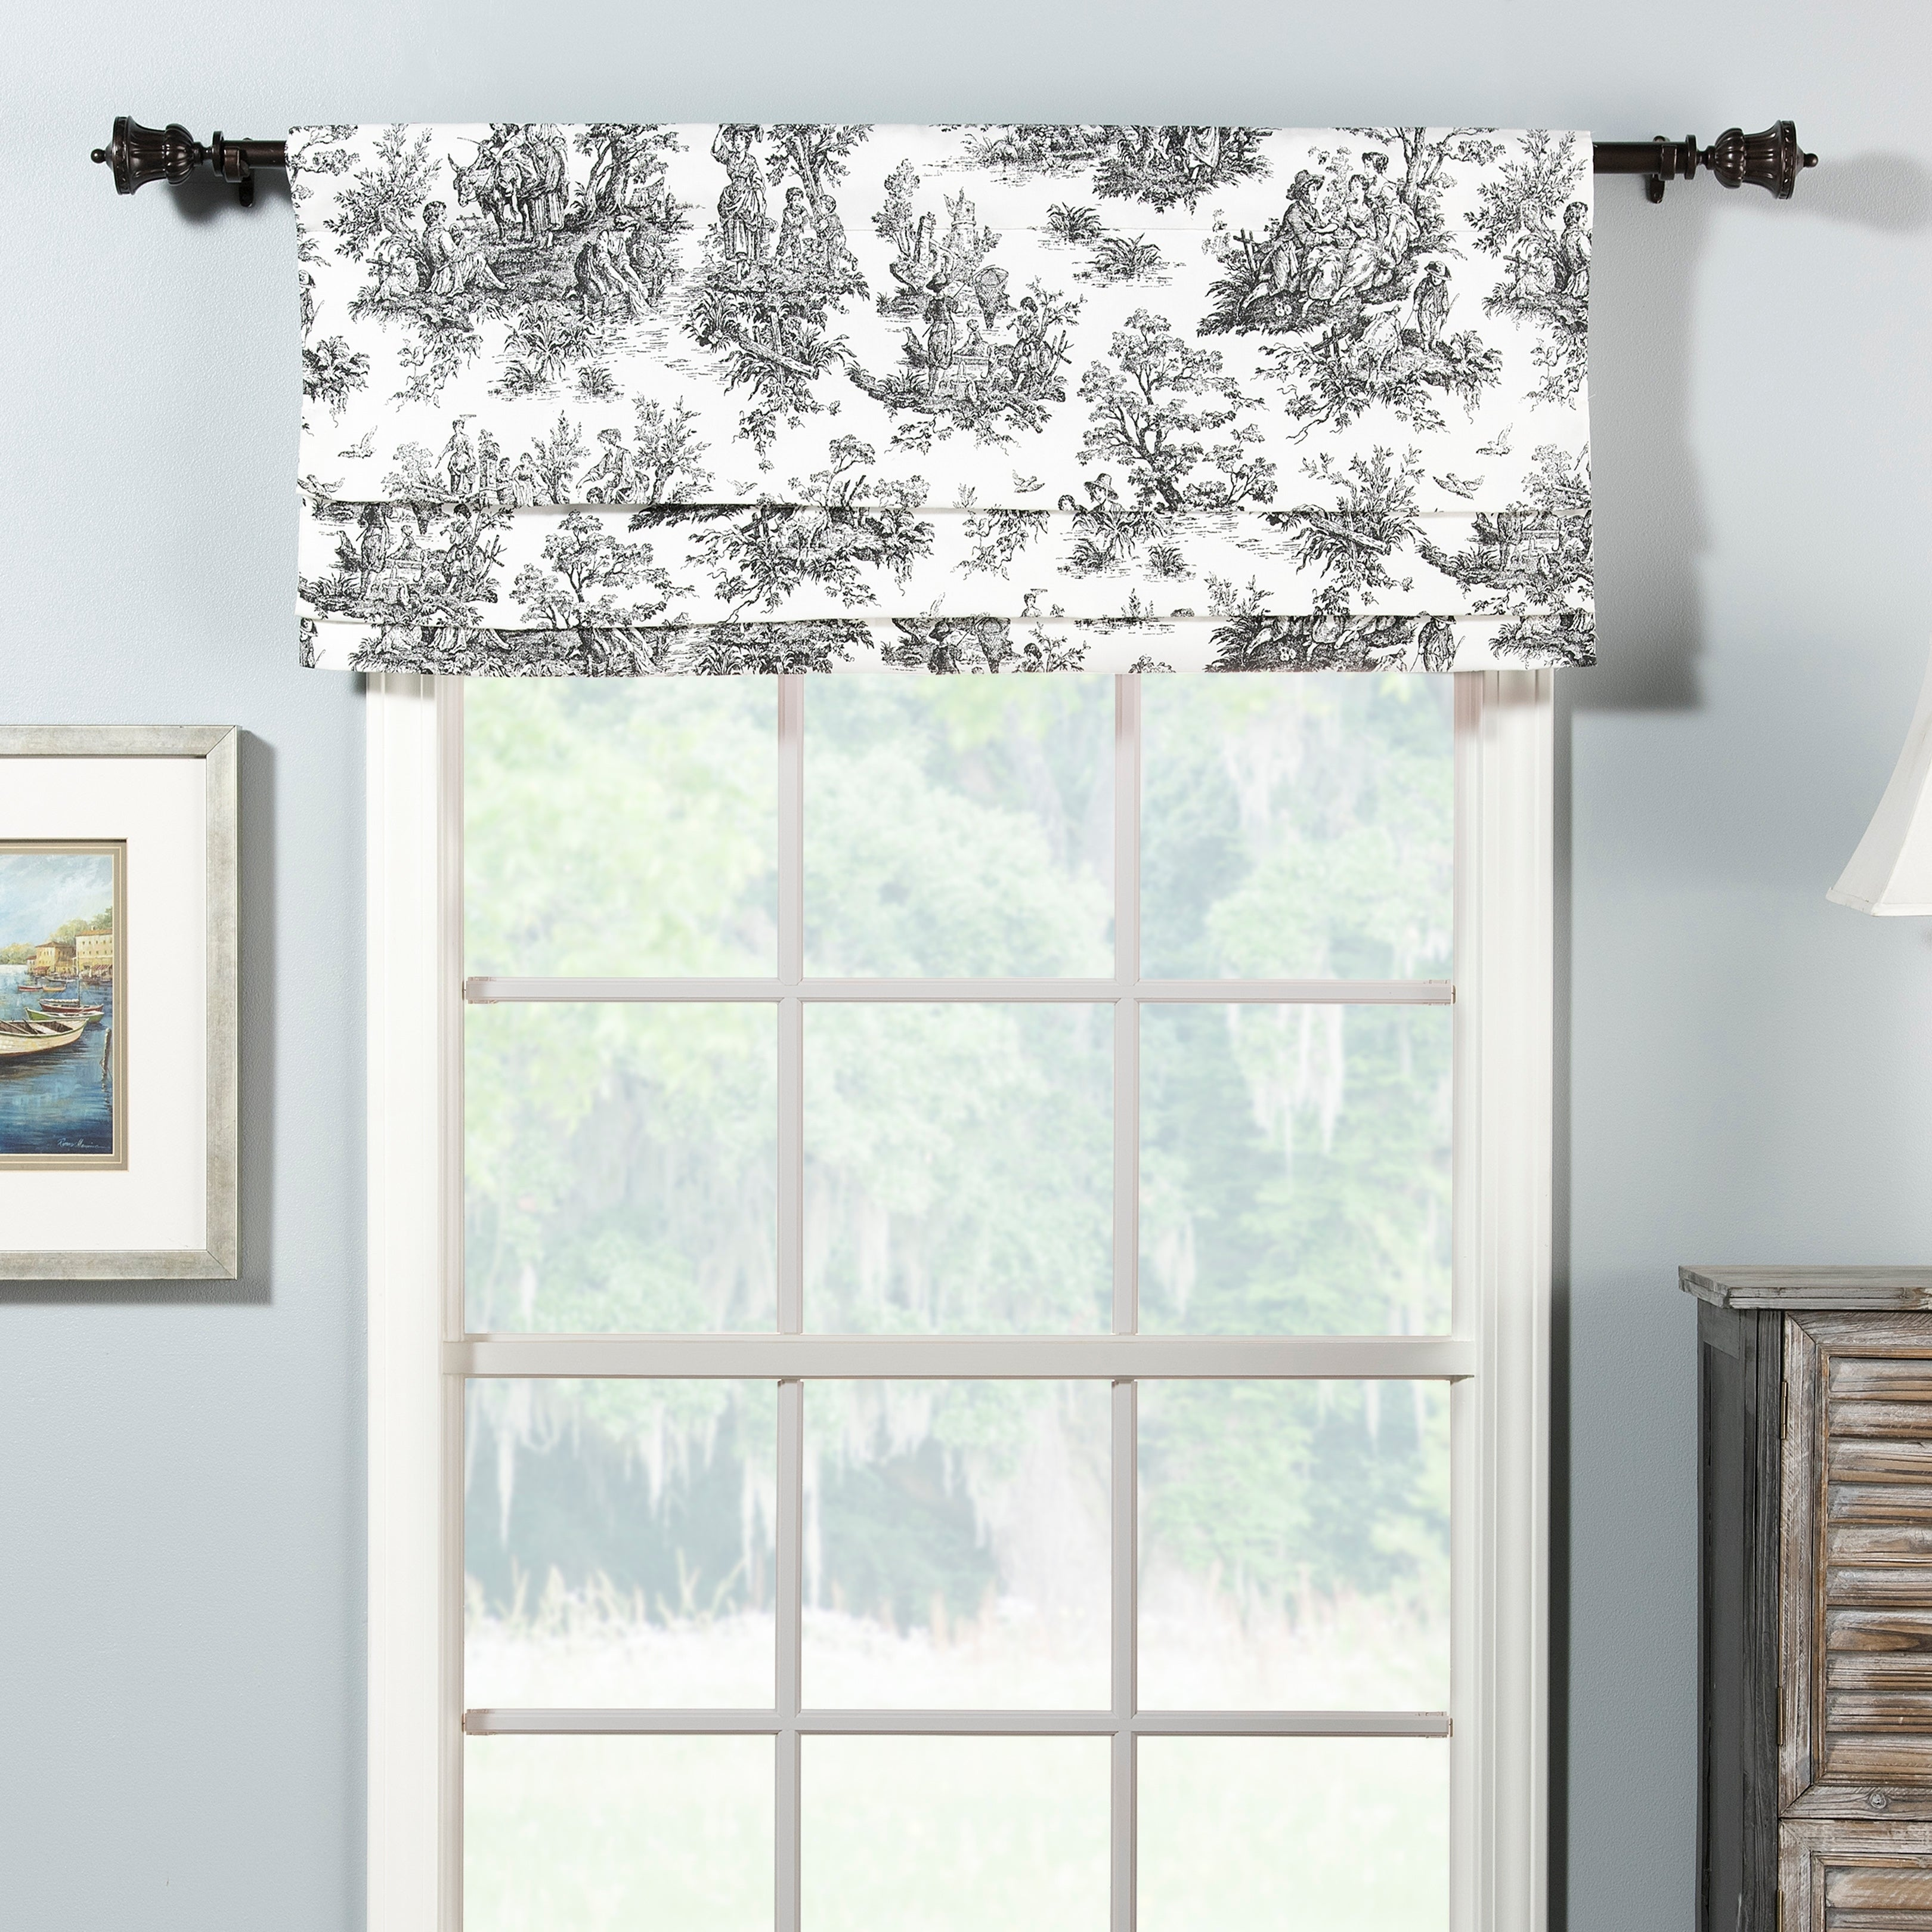 curtains treatment shades shop and window roll shutters cost thermal cordless shade tiers valance jayden ideas in touch fabric new pictures kitchen of blinds faux custom cover coverings tier ruffled black vertical inside modern full treatments drapery class wood up bamboo design roman size